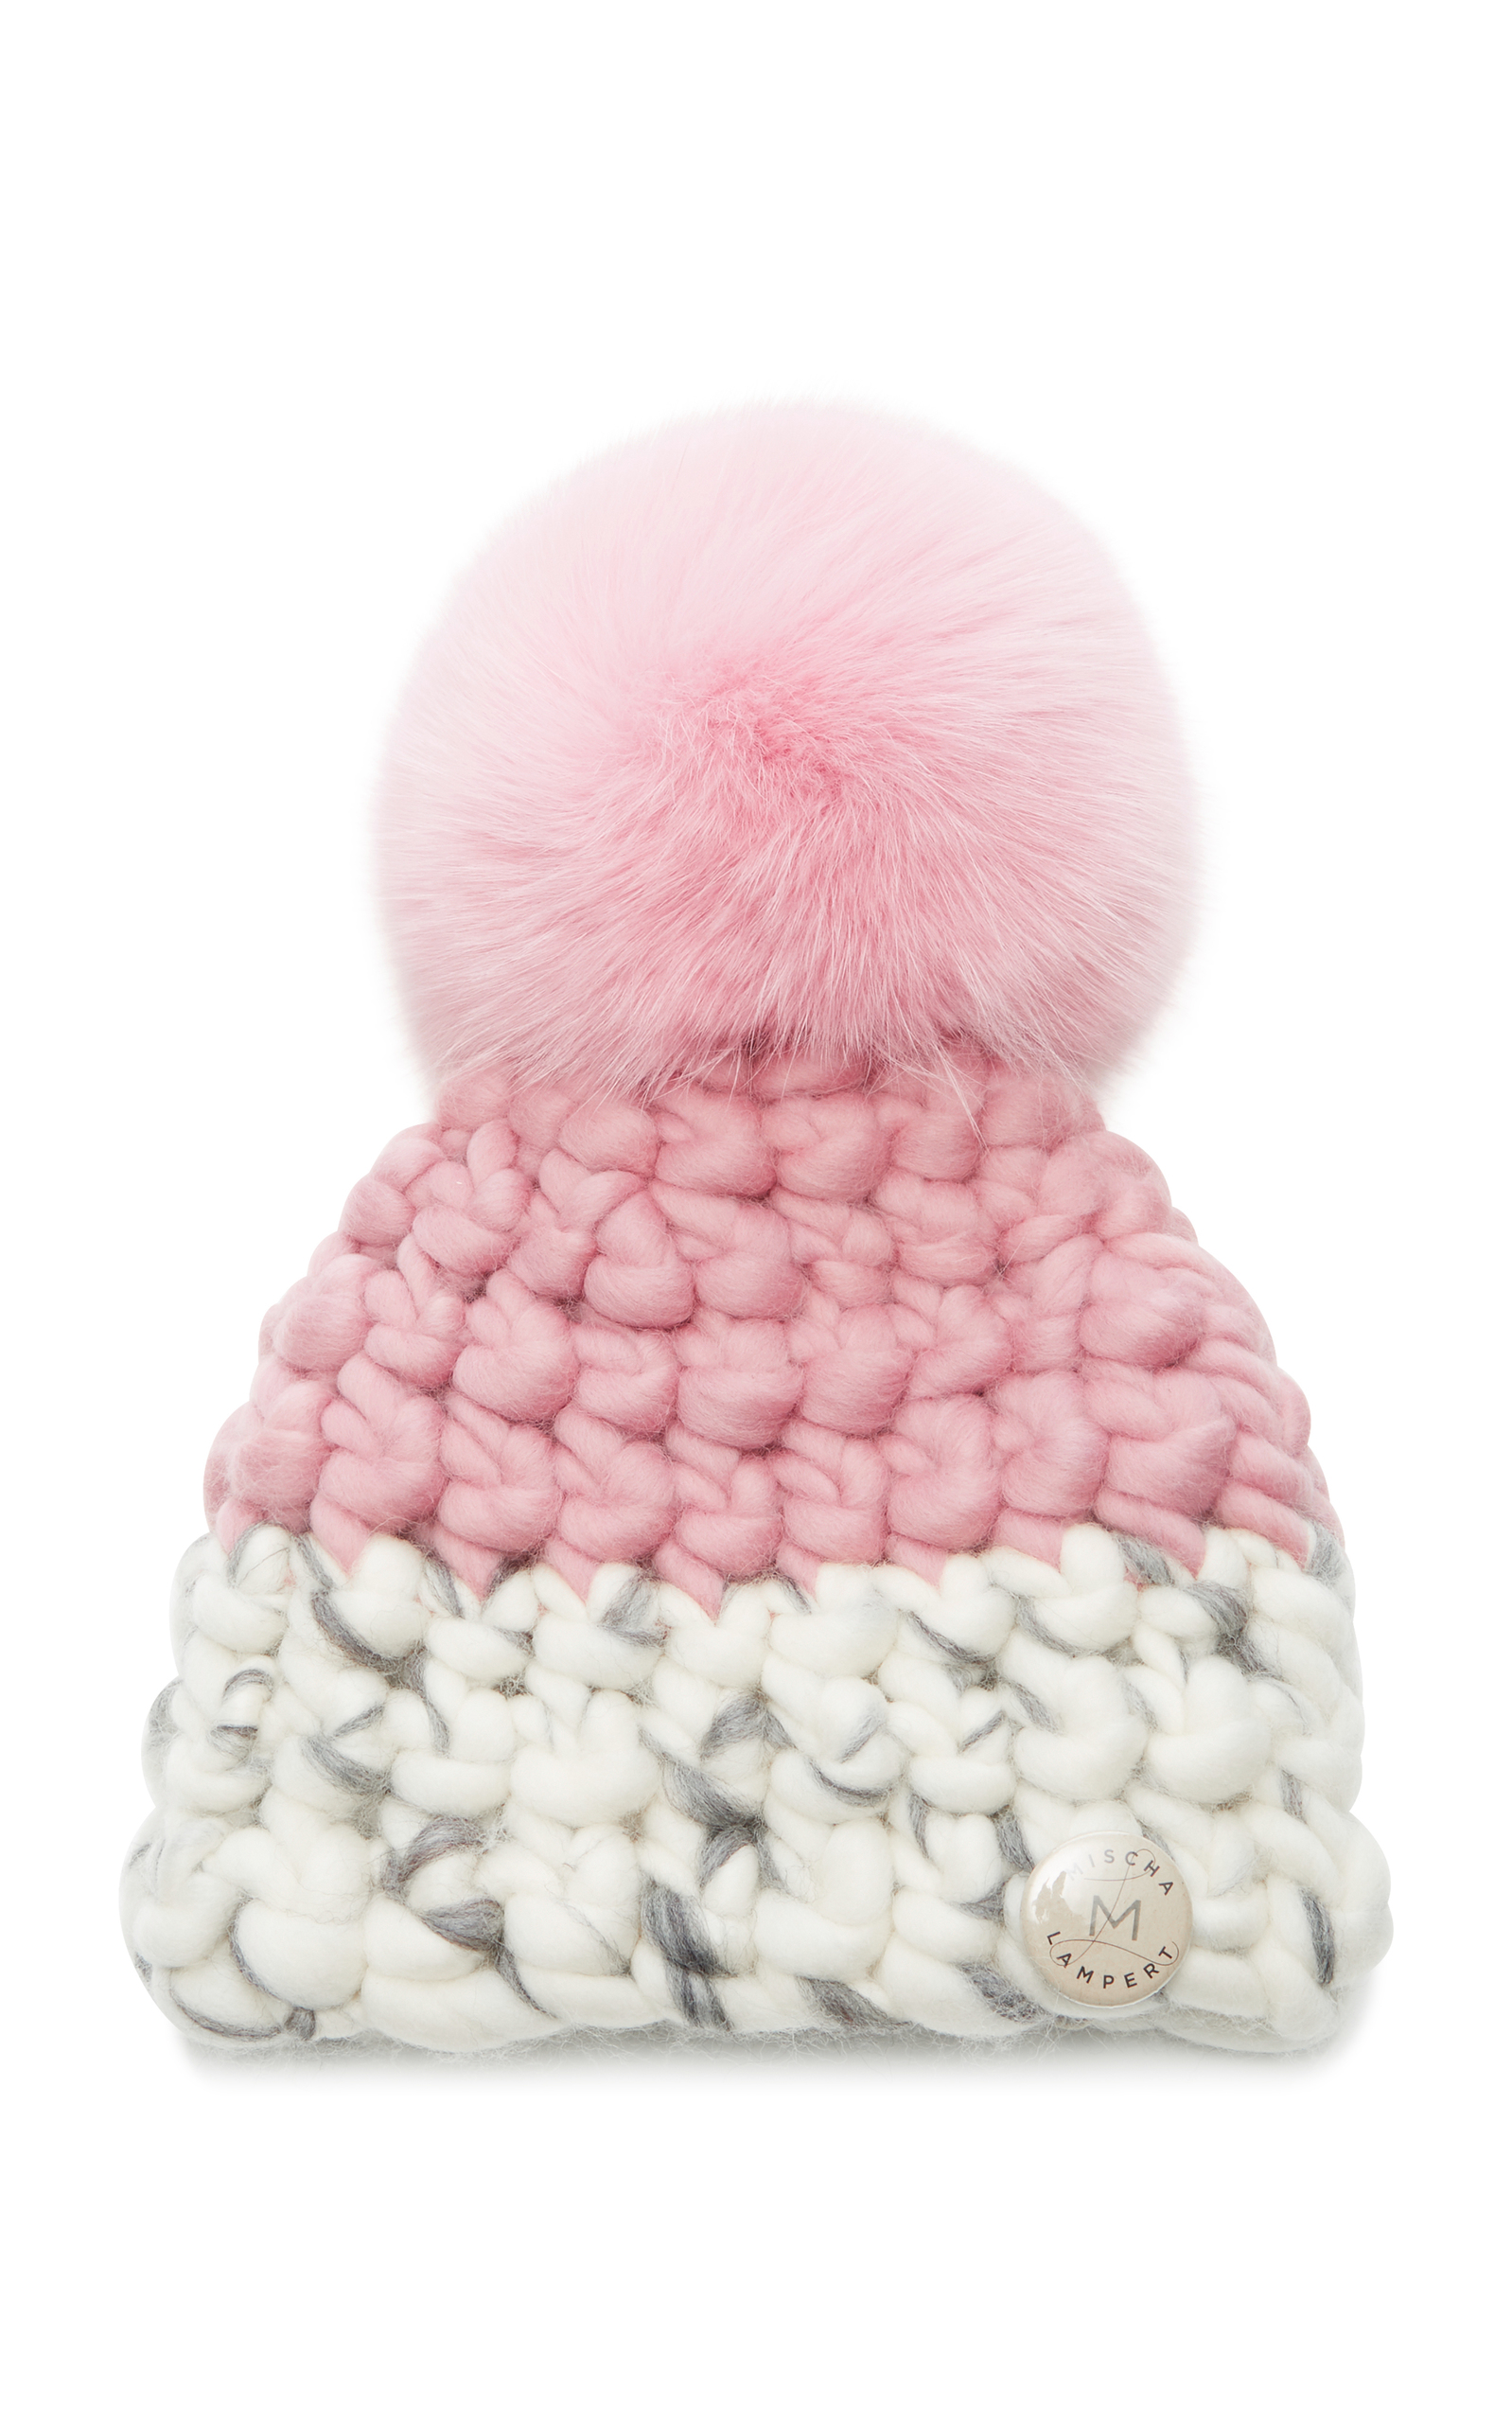 MISCHA LAMPERT CHILDREN'S DEEP COLOR-BLOCK BEANIE